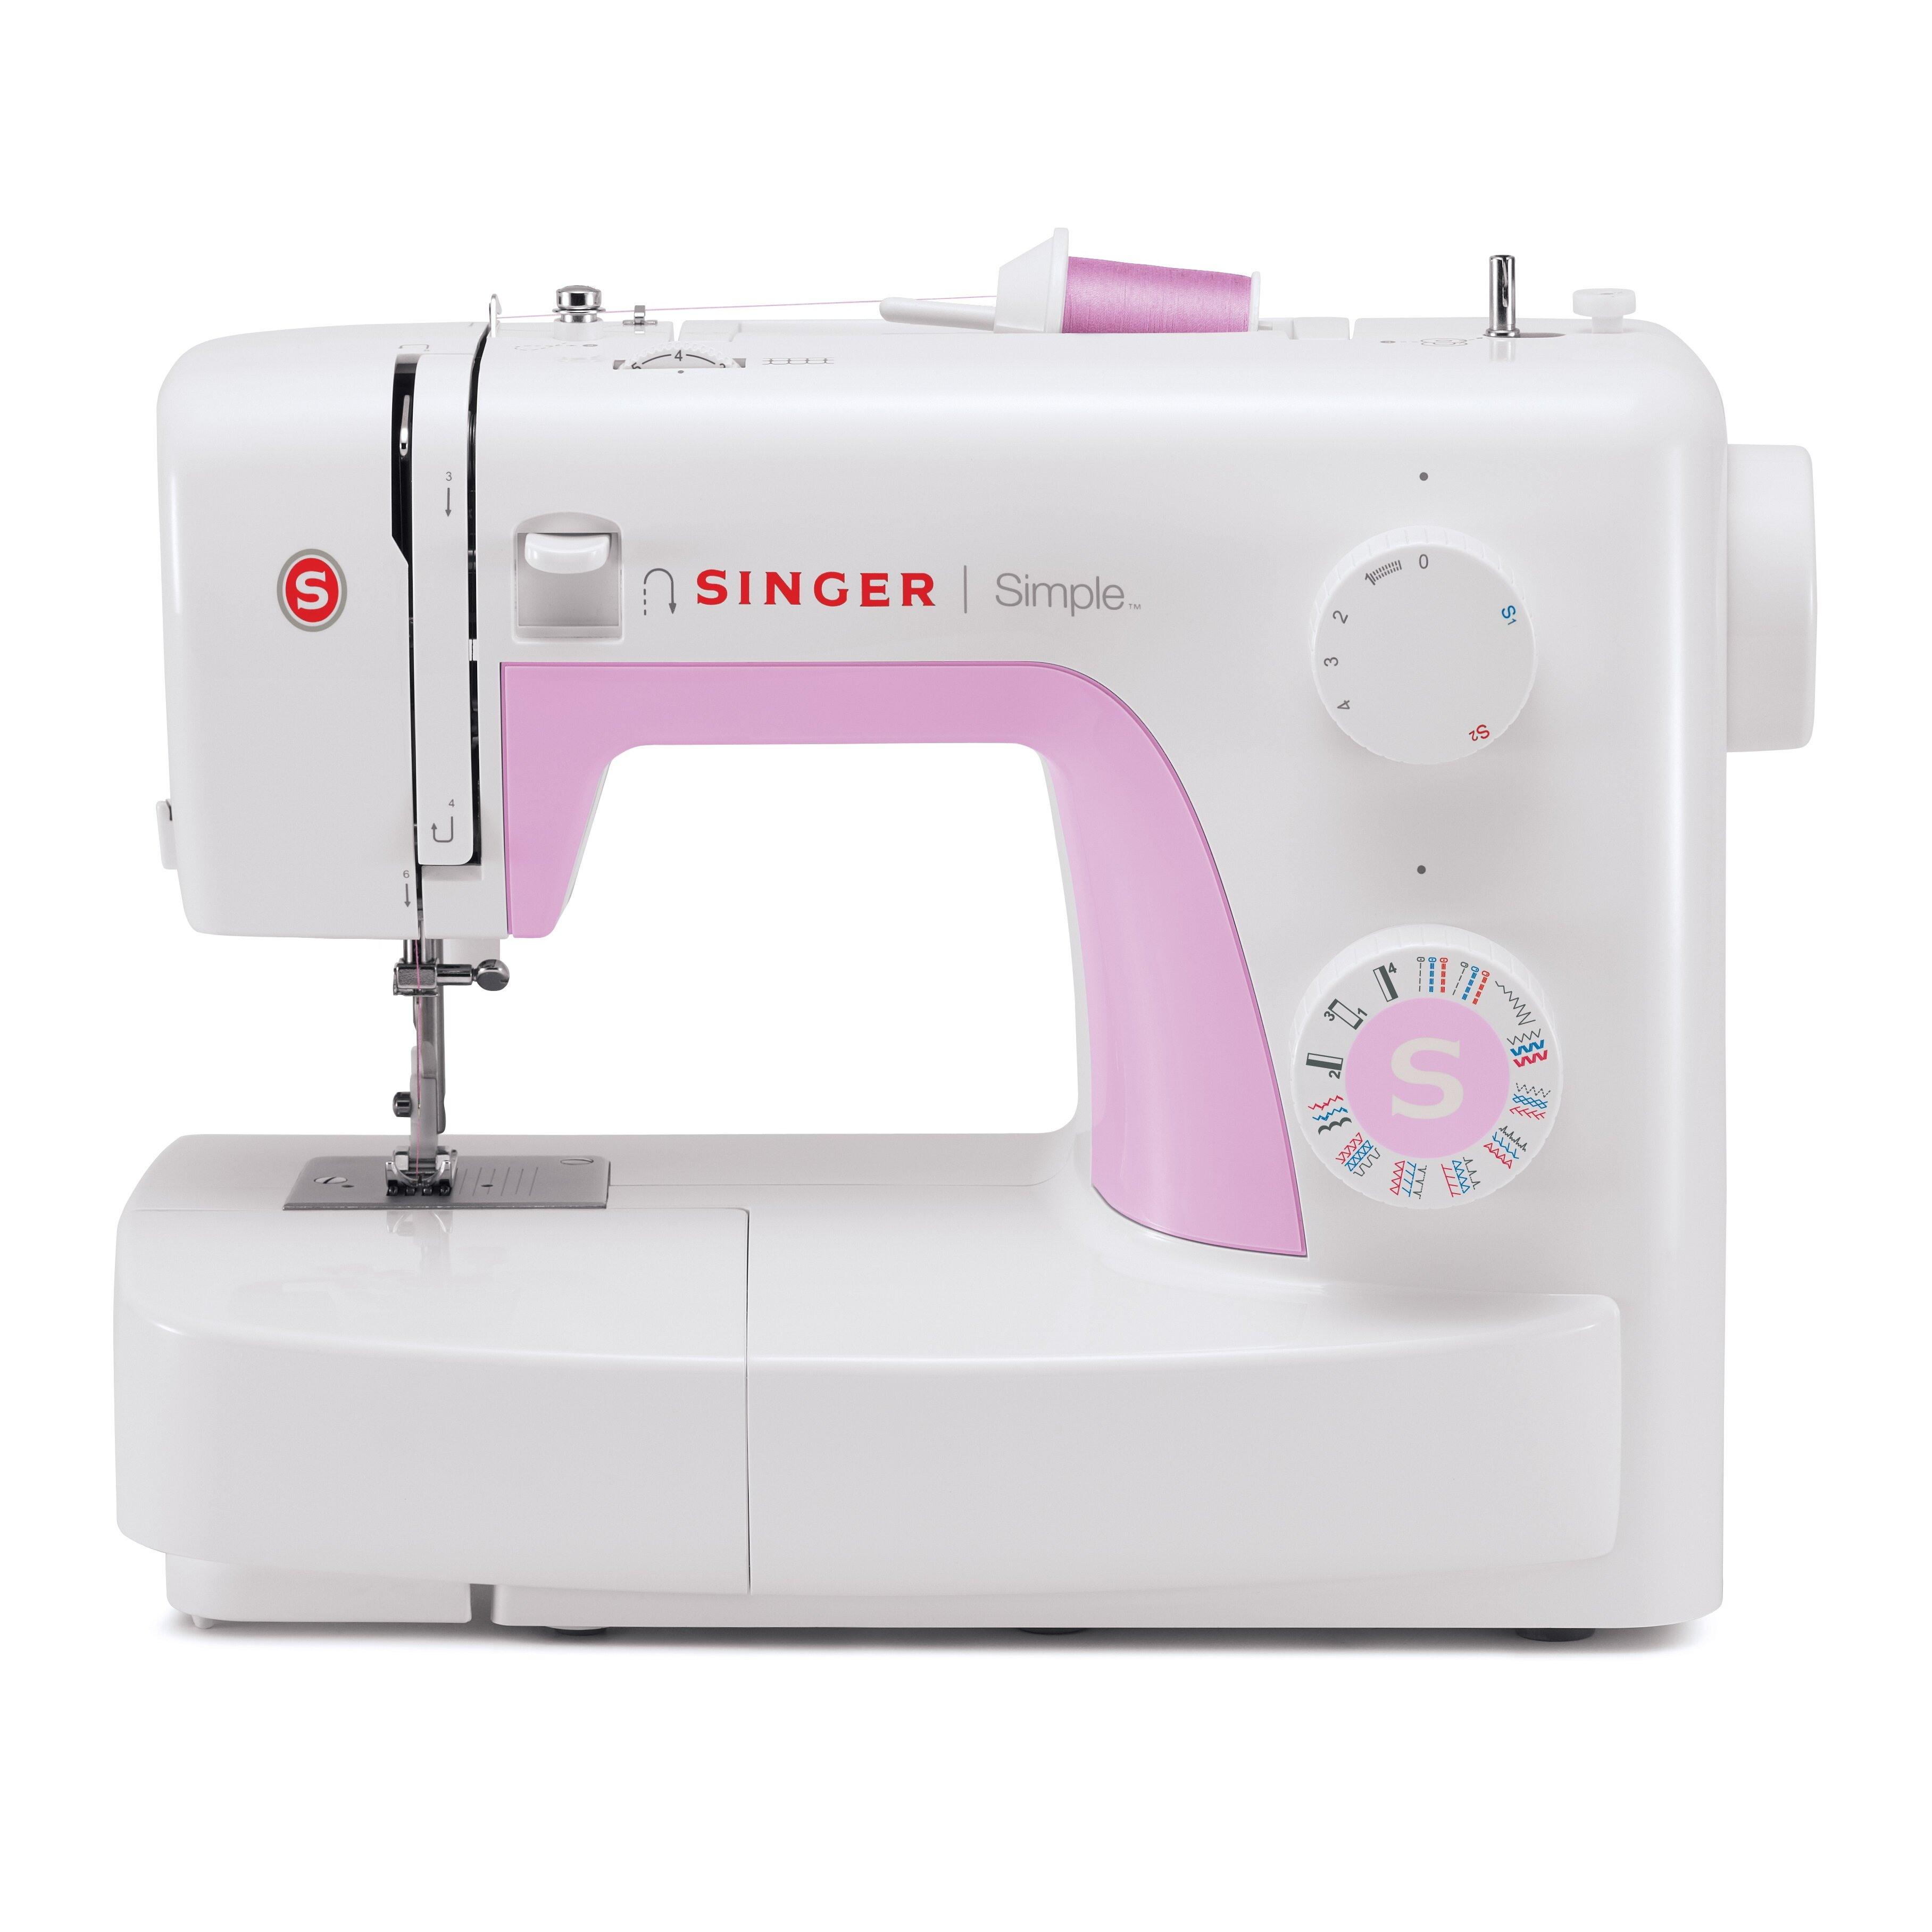 singer learn to sew sewing machine wayfair. Black Bedroom Furniture Sets. Home Design Ideas